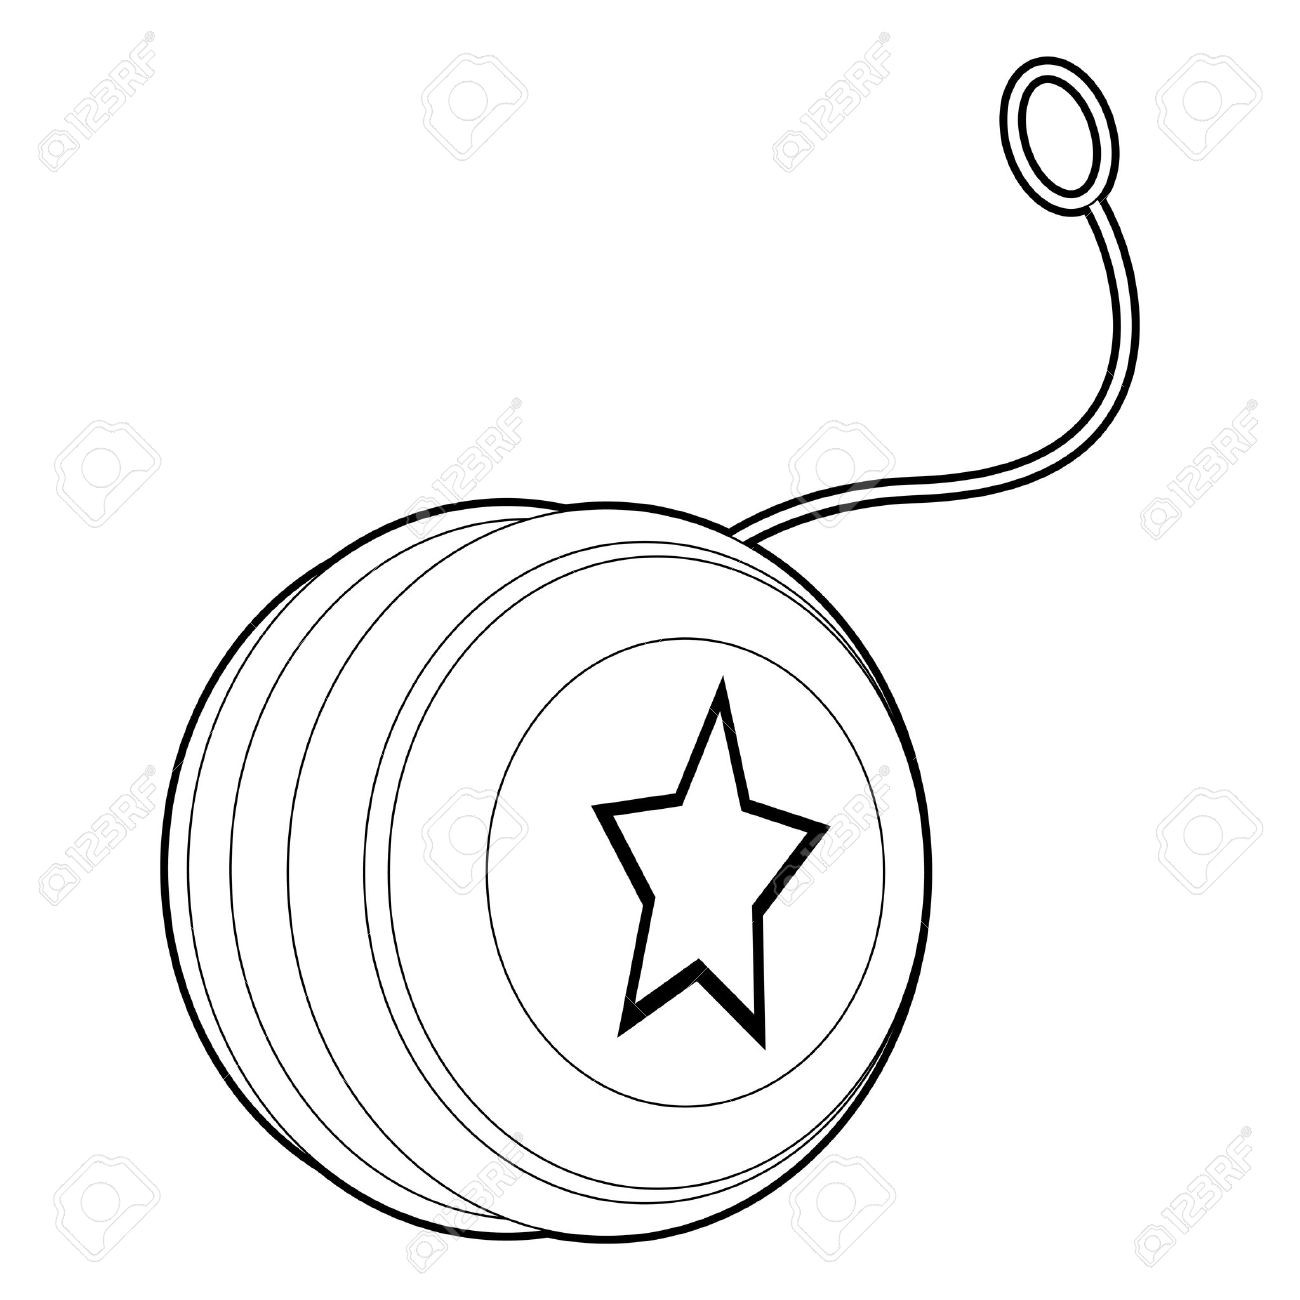 Newl clipart image transparent Yoyo clip art black and white Coloring Book Outlined Yo Yo Royalty ... image transparent